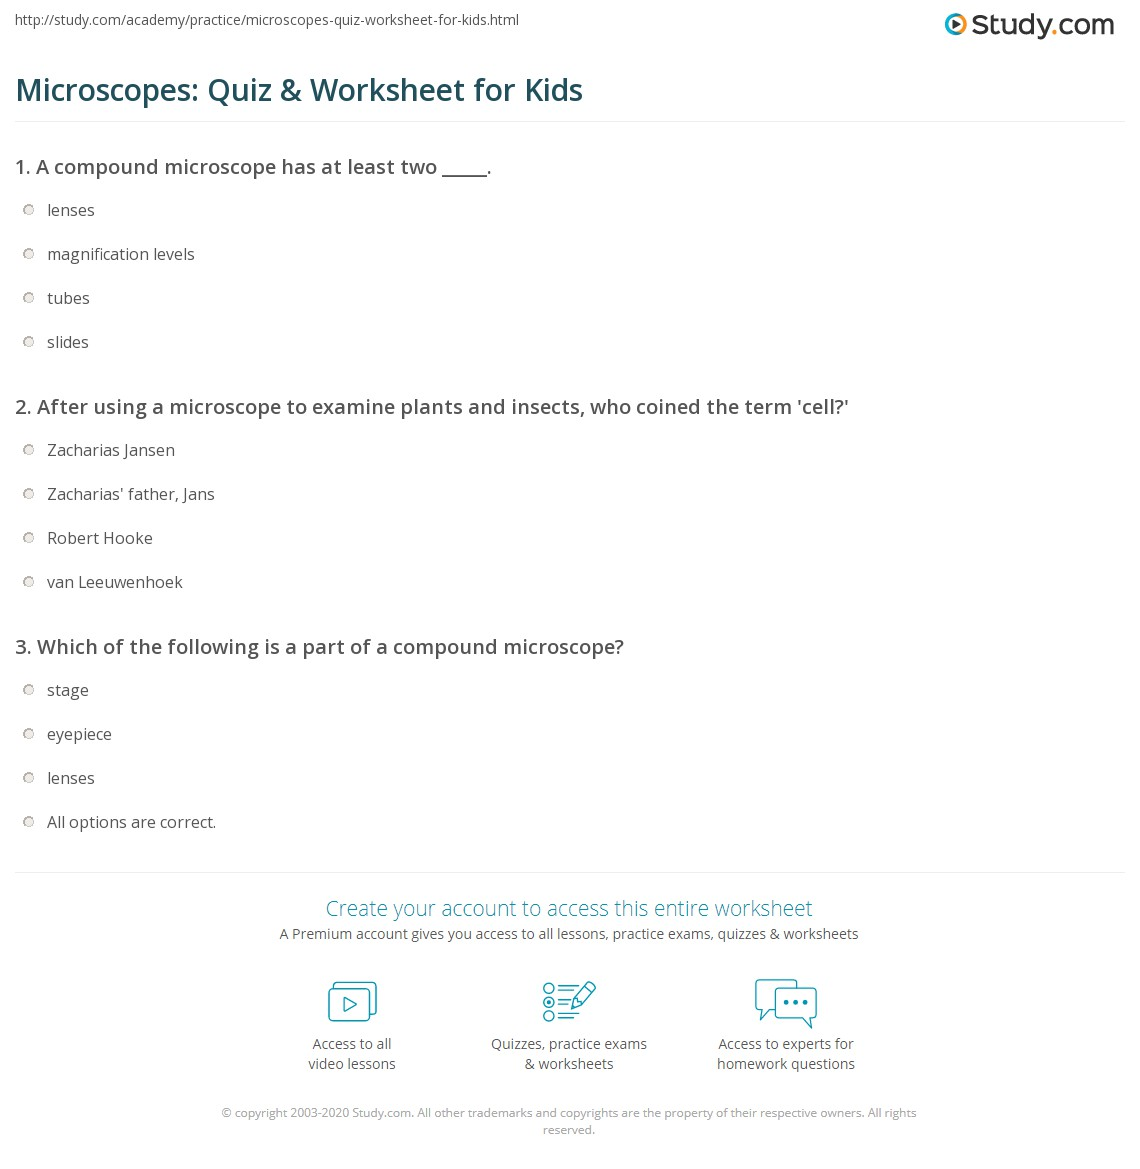 Microscopes: Quiz & Worksheet for Kids | Study.com